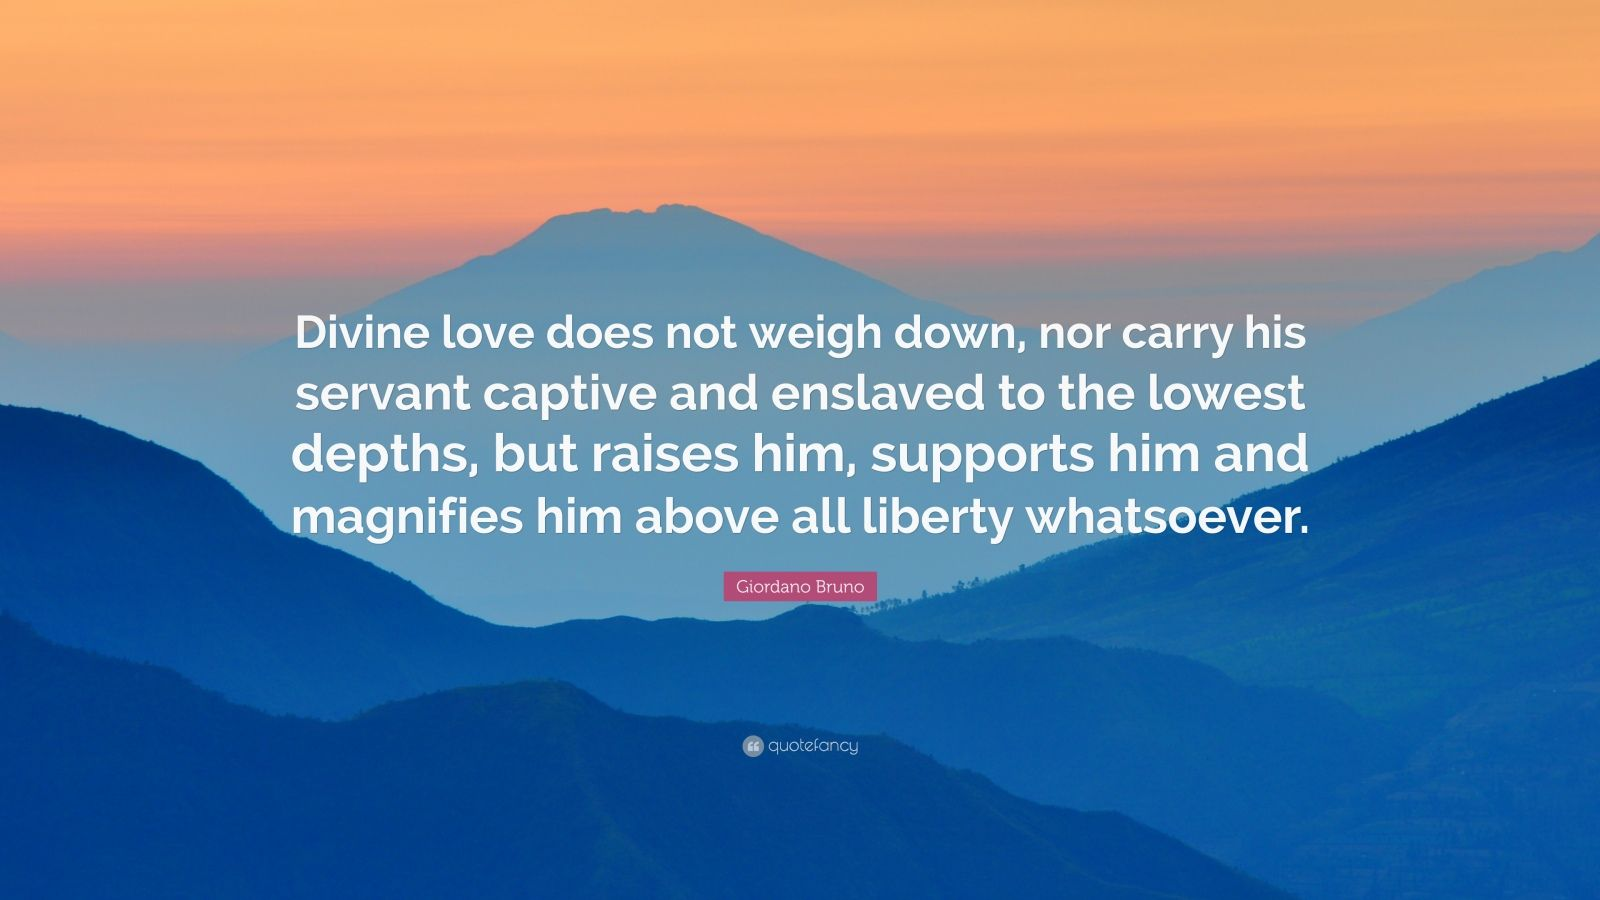 "Giordano Bruno Quote: ""Divine love does not weigh down, nor carry his servant captive and enslaved to the lowest depths, but raises him, supports him and magnifies him above all liberty whatsoever."""